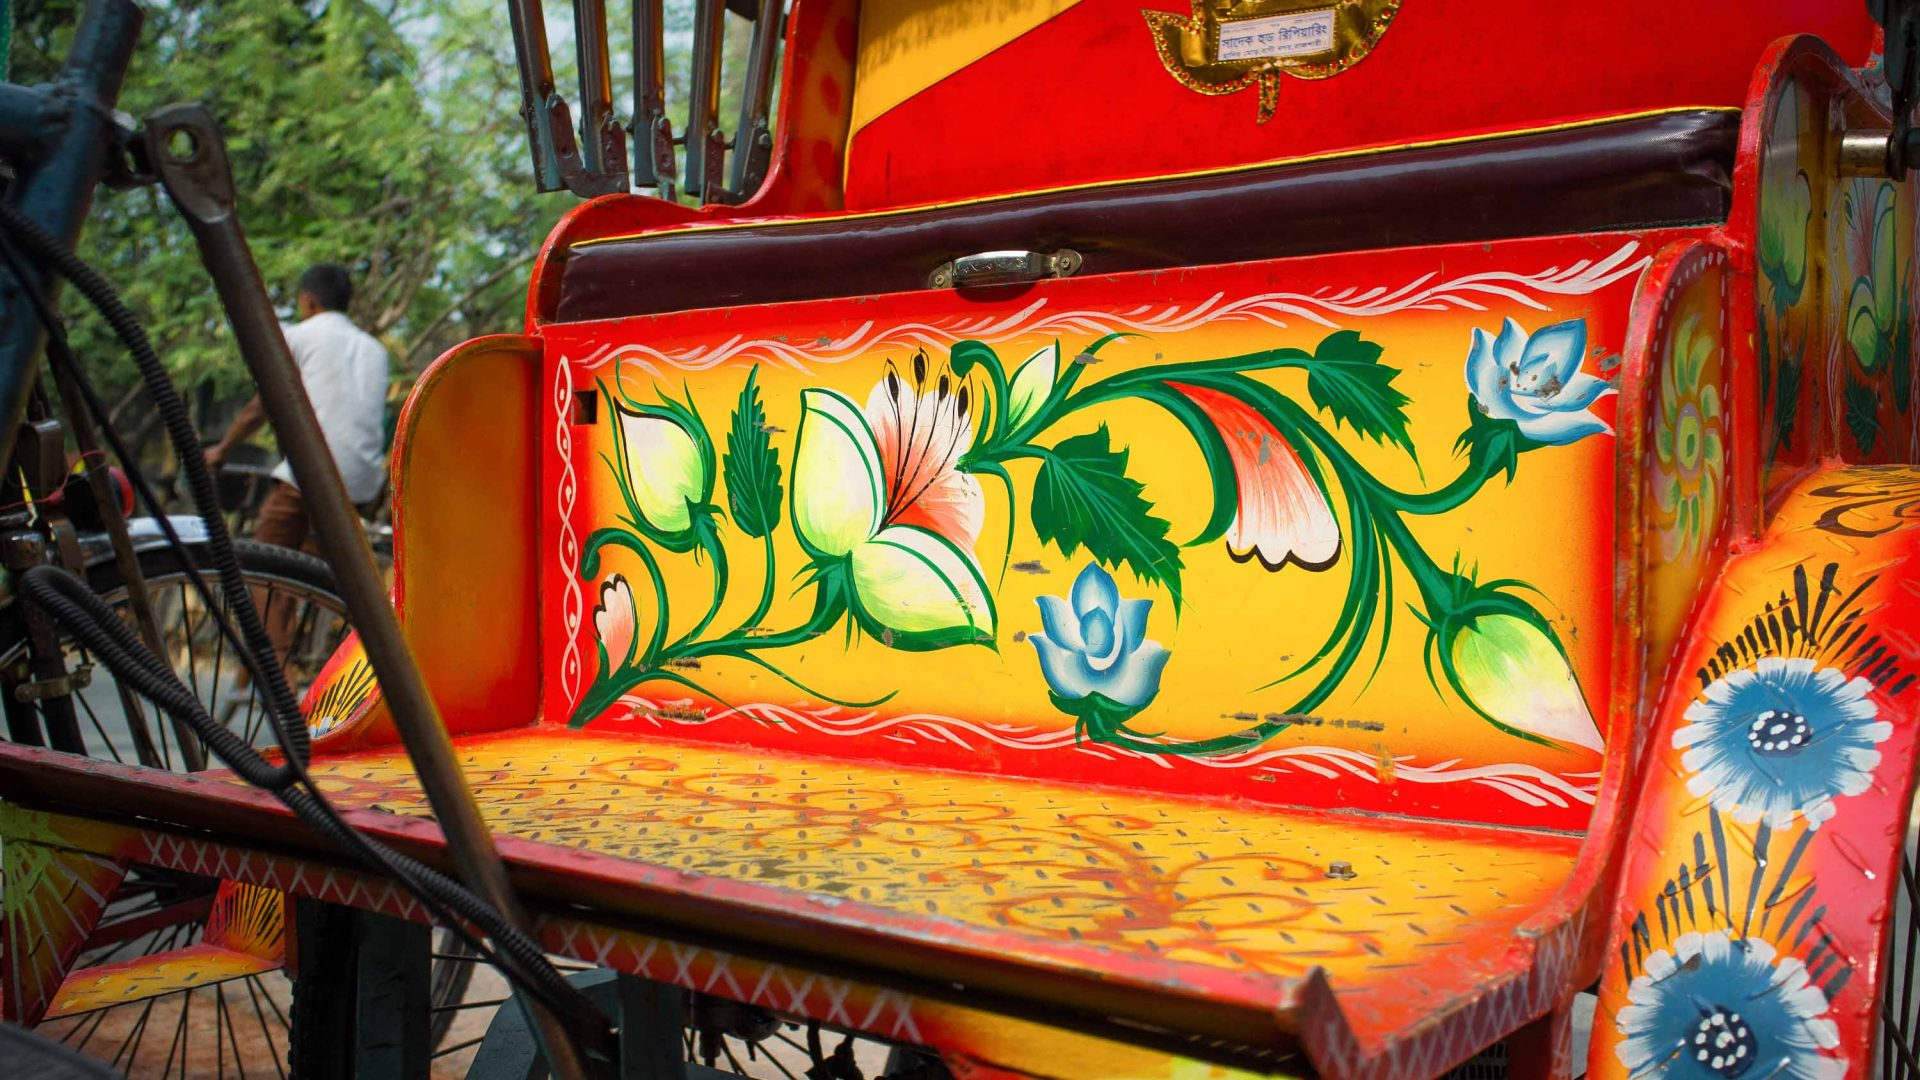 A rickshaw adorned with flowers.